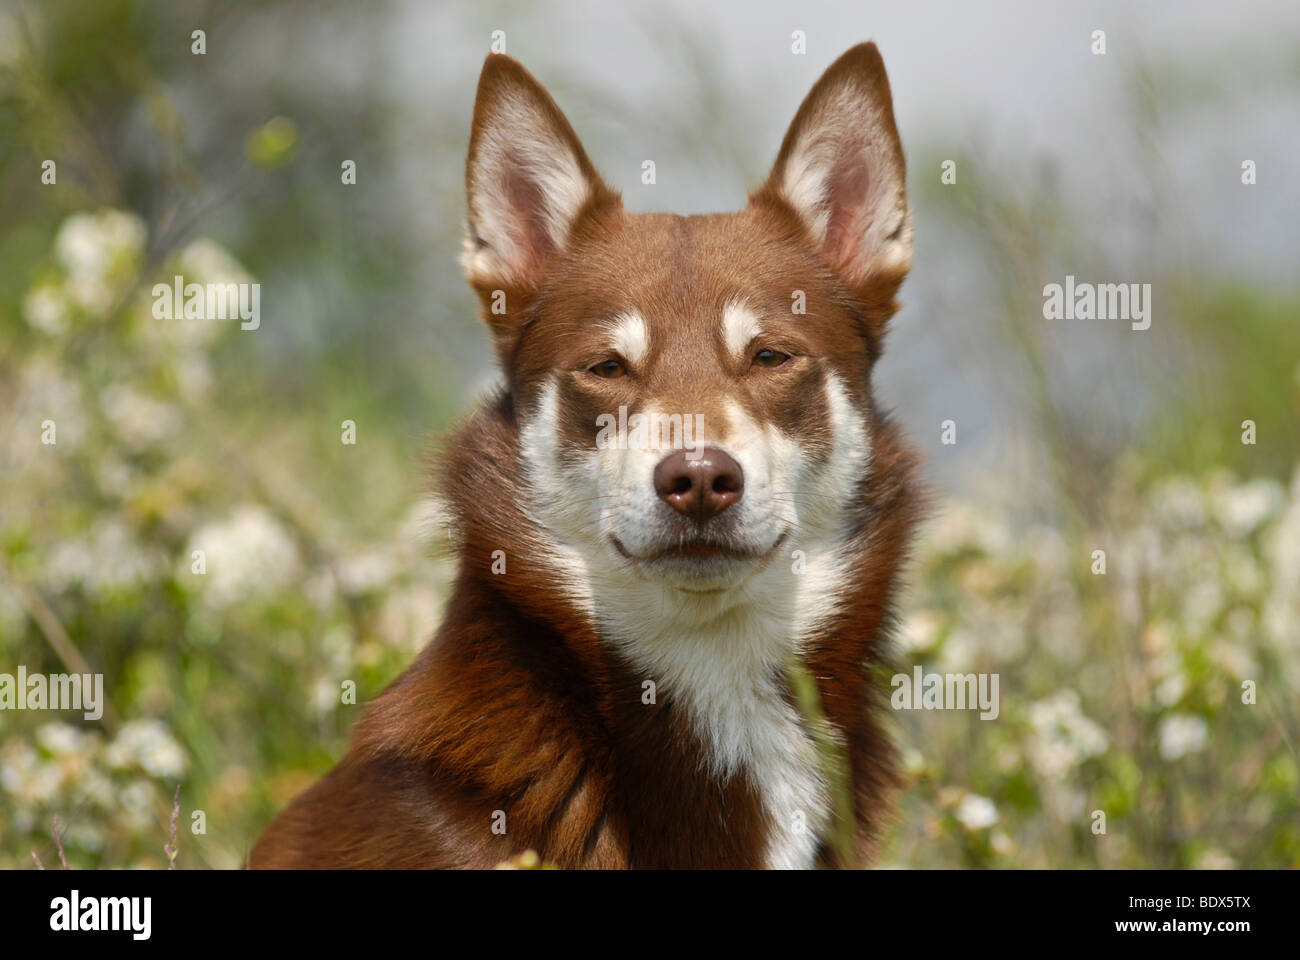 Lapponian Herder, Lapinporokoira or Lapp Reindeer dog, portrait in a flowery meadow - Stock Image